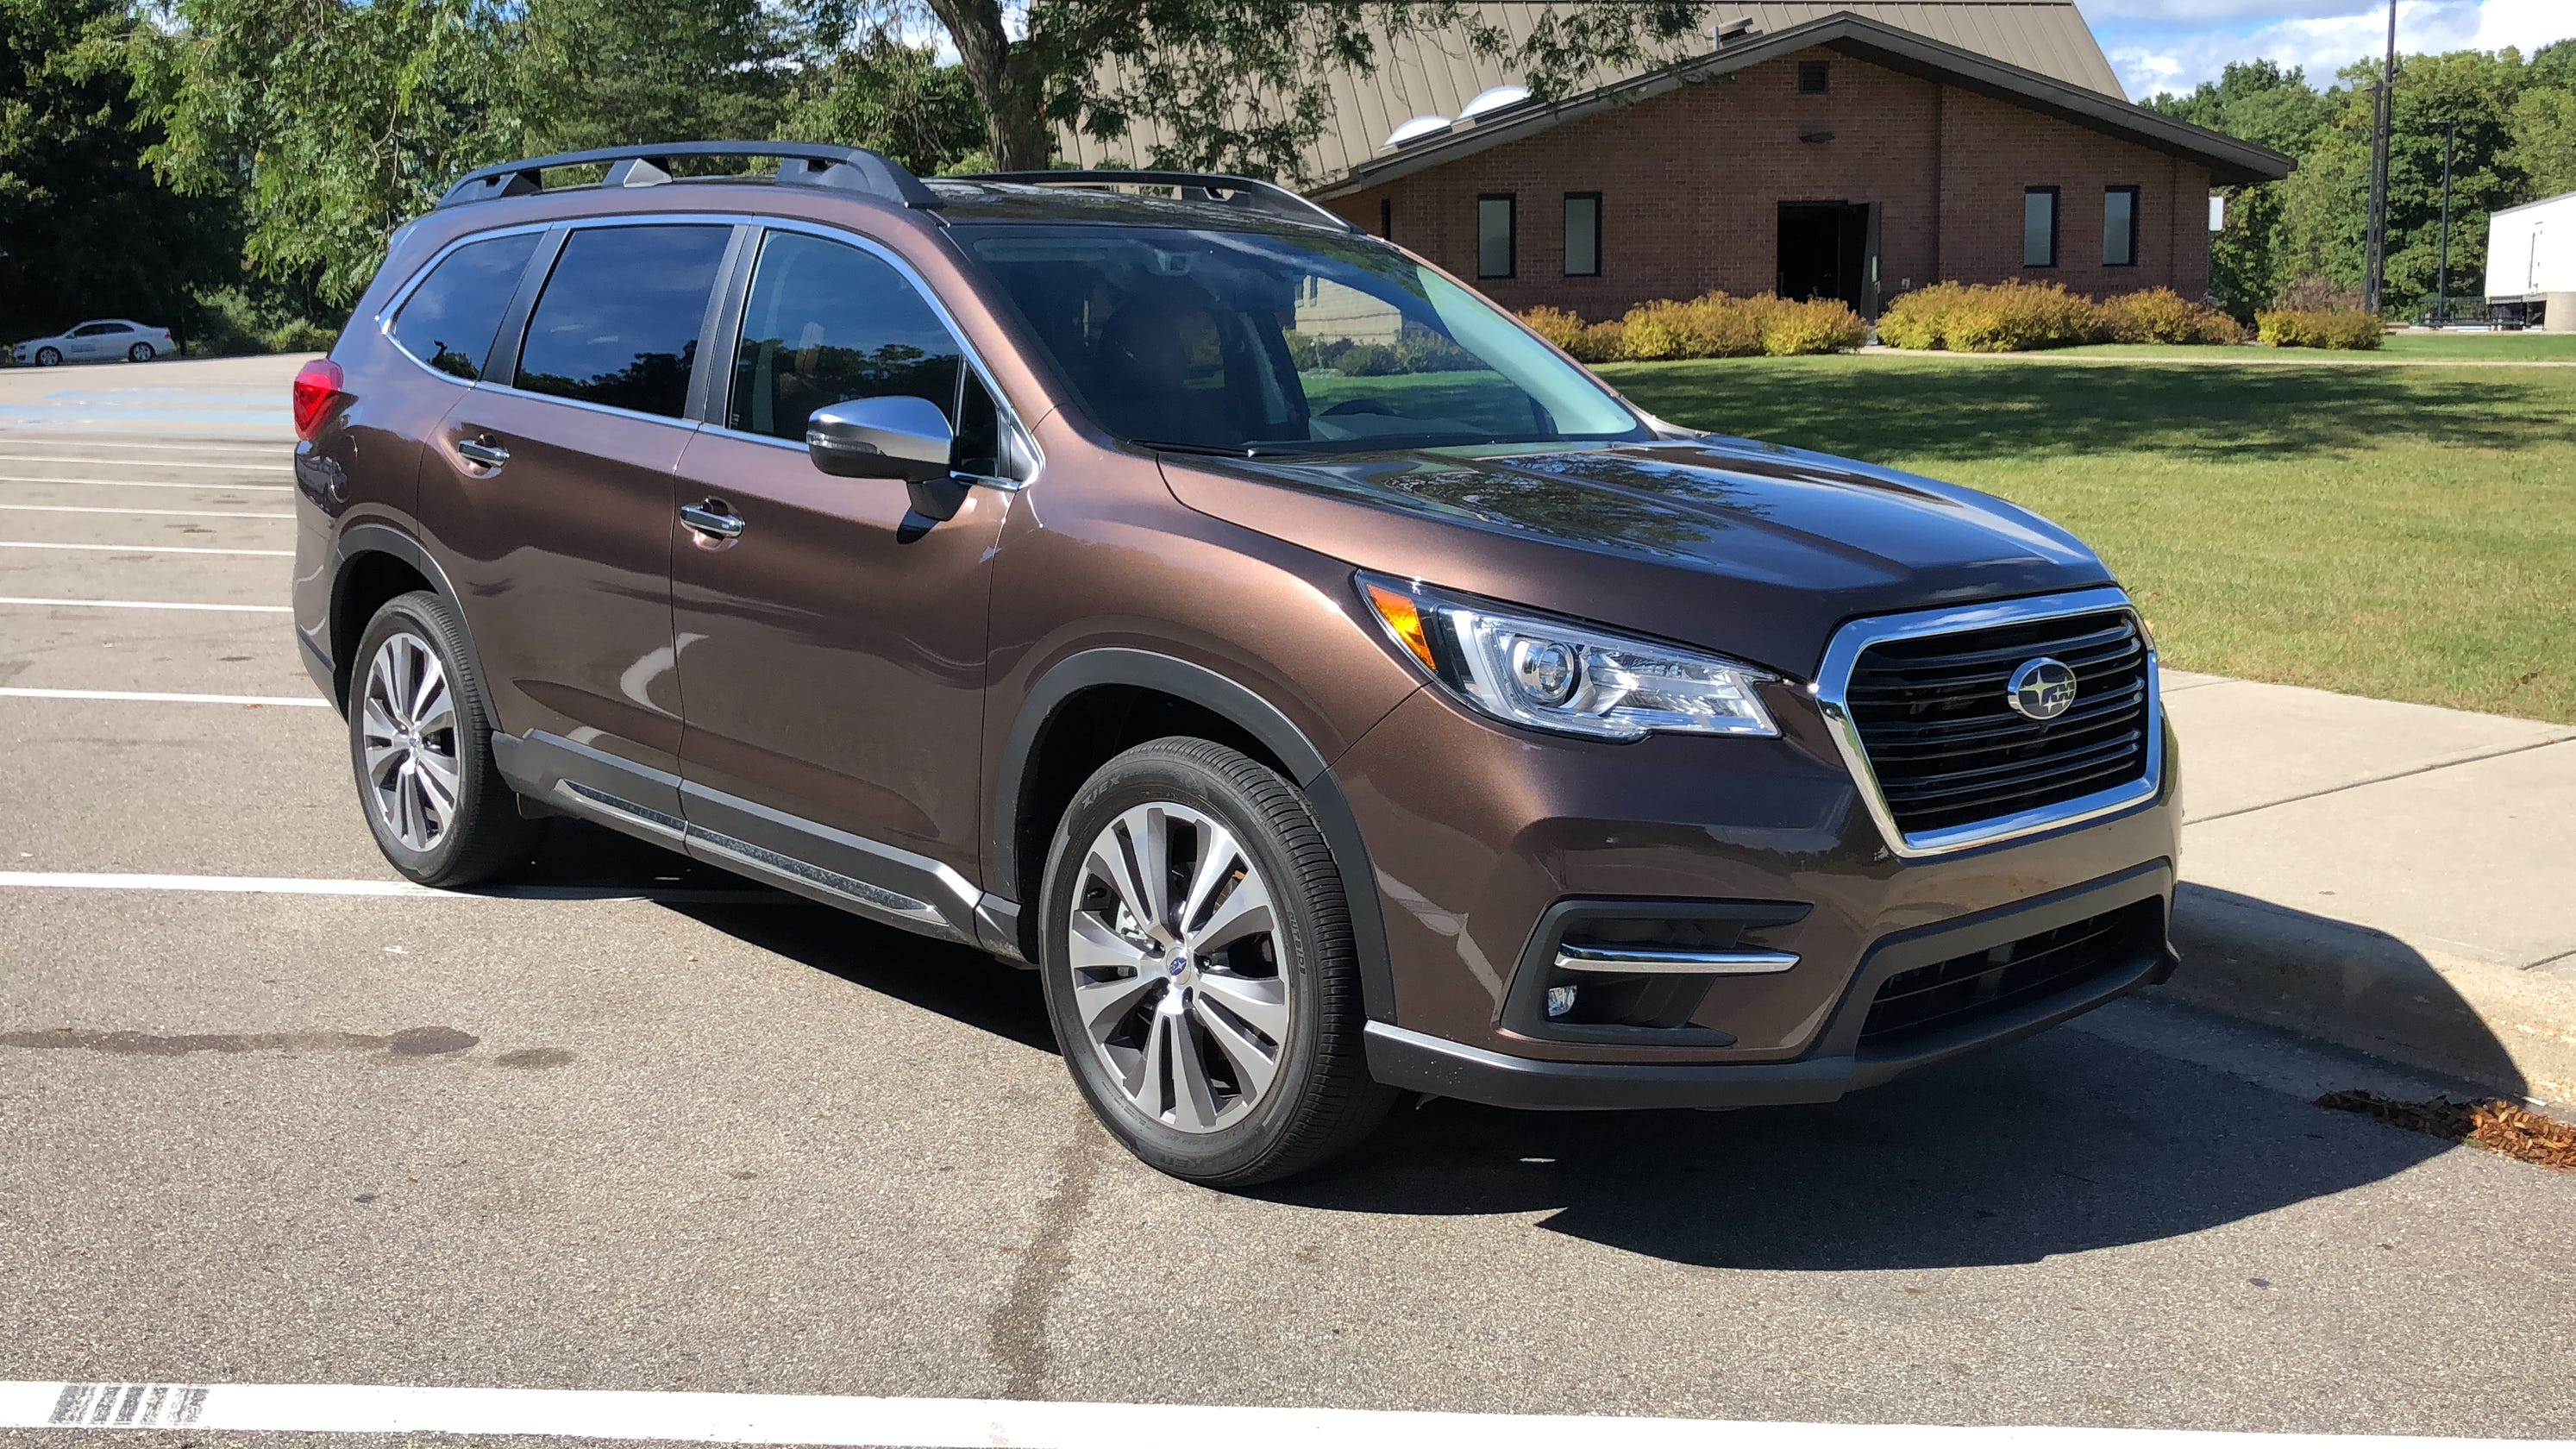 Review: 2019 Ascent is Subaru families have been waiting for